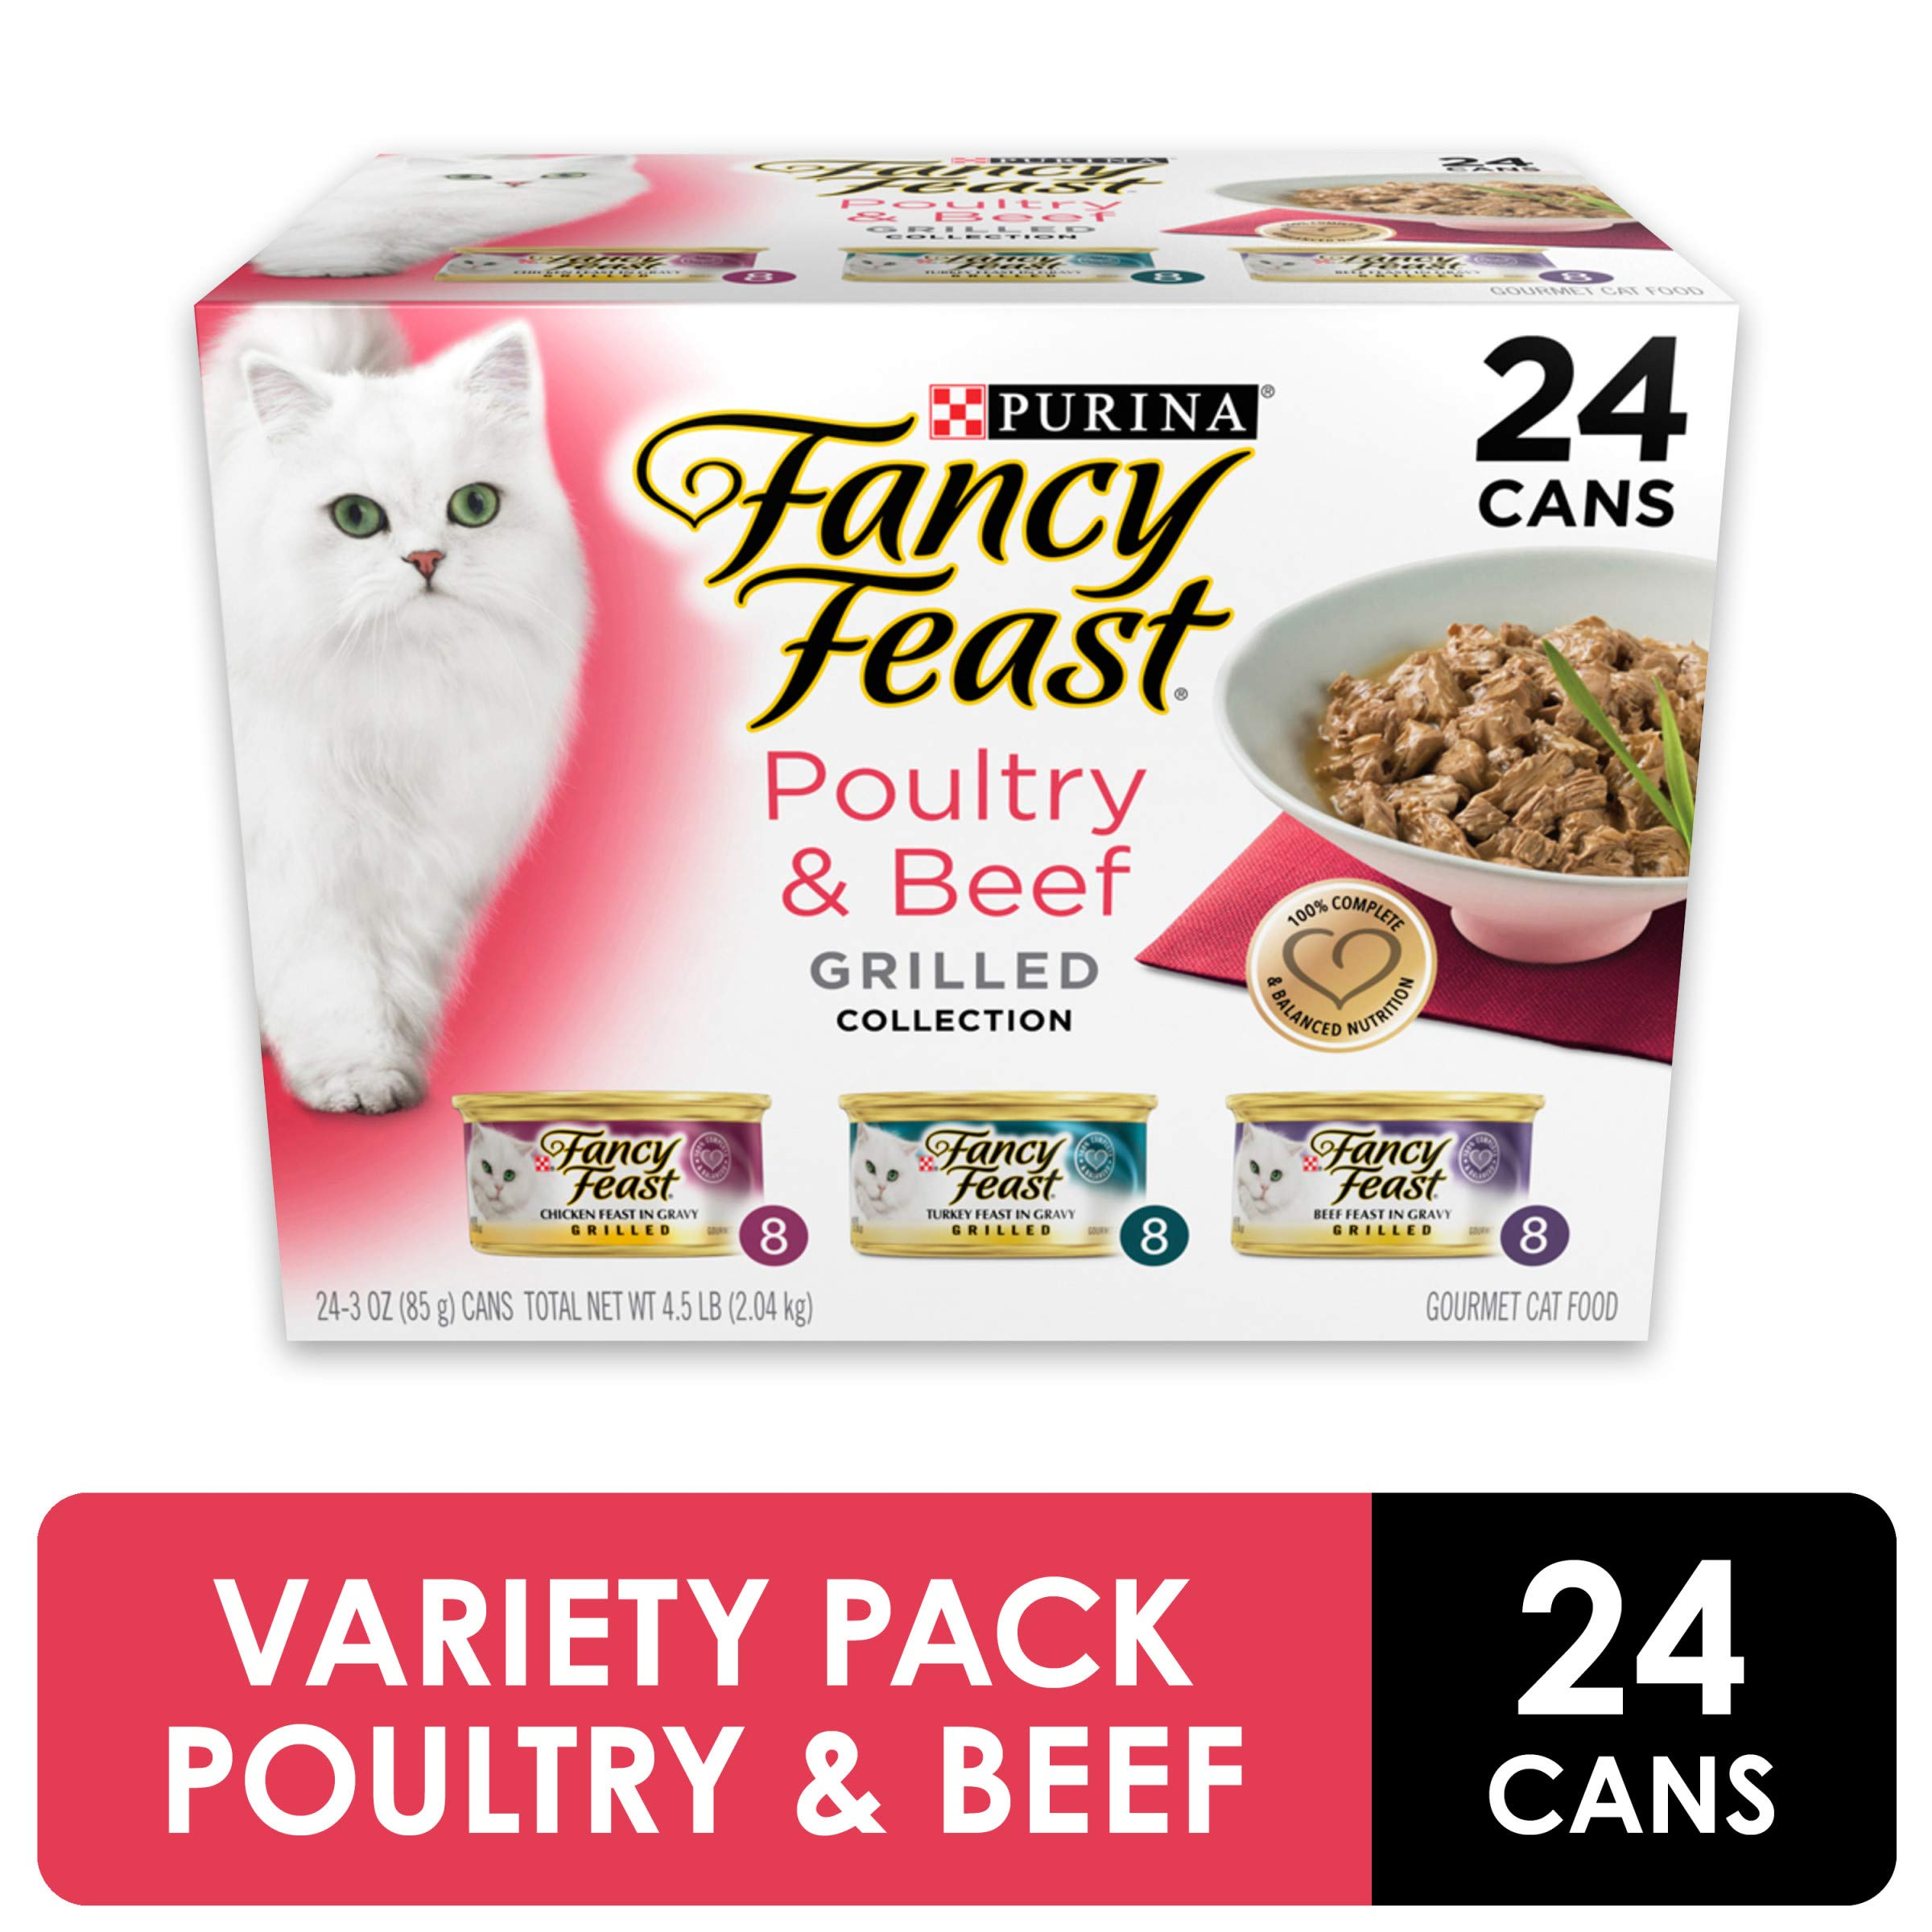 Purina Fancy Feast Gravy Wet Cat Food Variety Pack, Poultry & Beef Grilled Collection - (24) 3 oz. Cans by Purina Fancy Feast